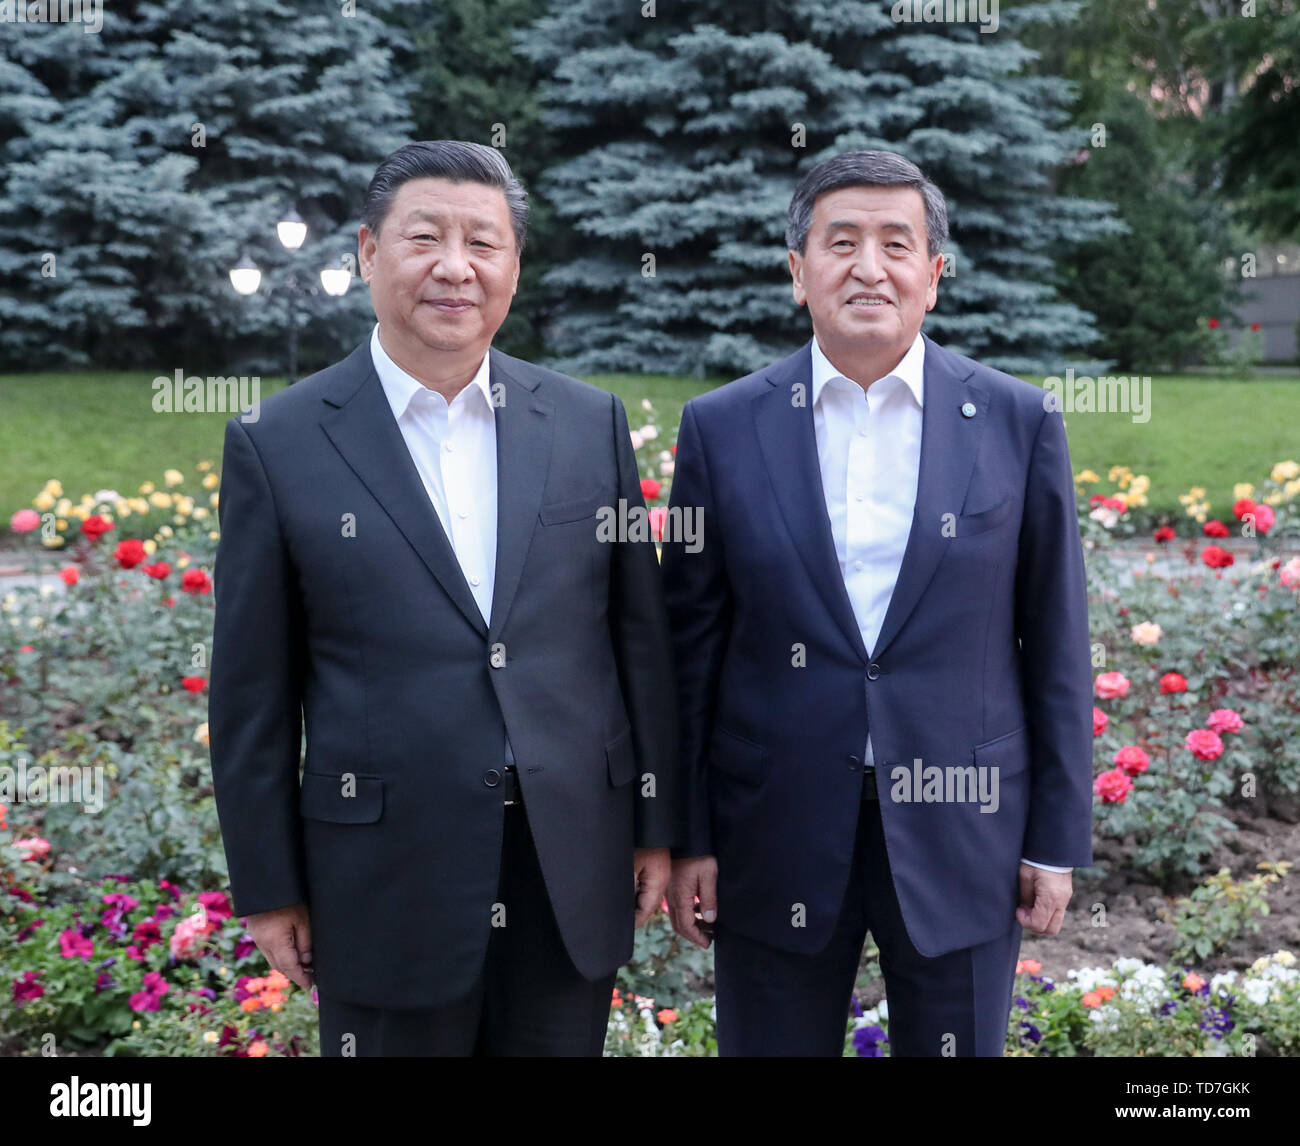 Bishkek, Kyrgyzstan. 12th June, 2019. Chinese President Xi Jinping and his Kyrgyz counterpart Sooronbay Jeenbekov have a meeting at the presidential residence right after the Chinese president arrives in Bishkek, Kyrgyzstan, June 12, 2019. Credit: Yao Dawei/Xinhua/Alamy Live News - Stock Image